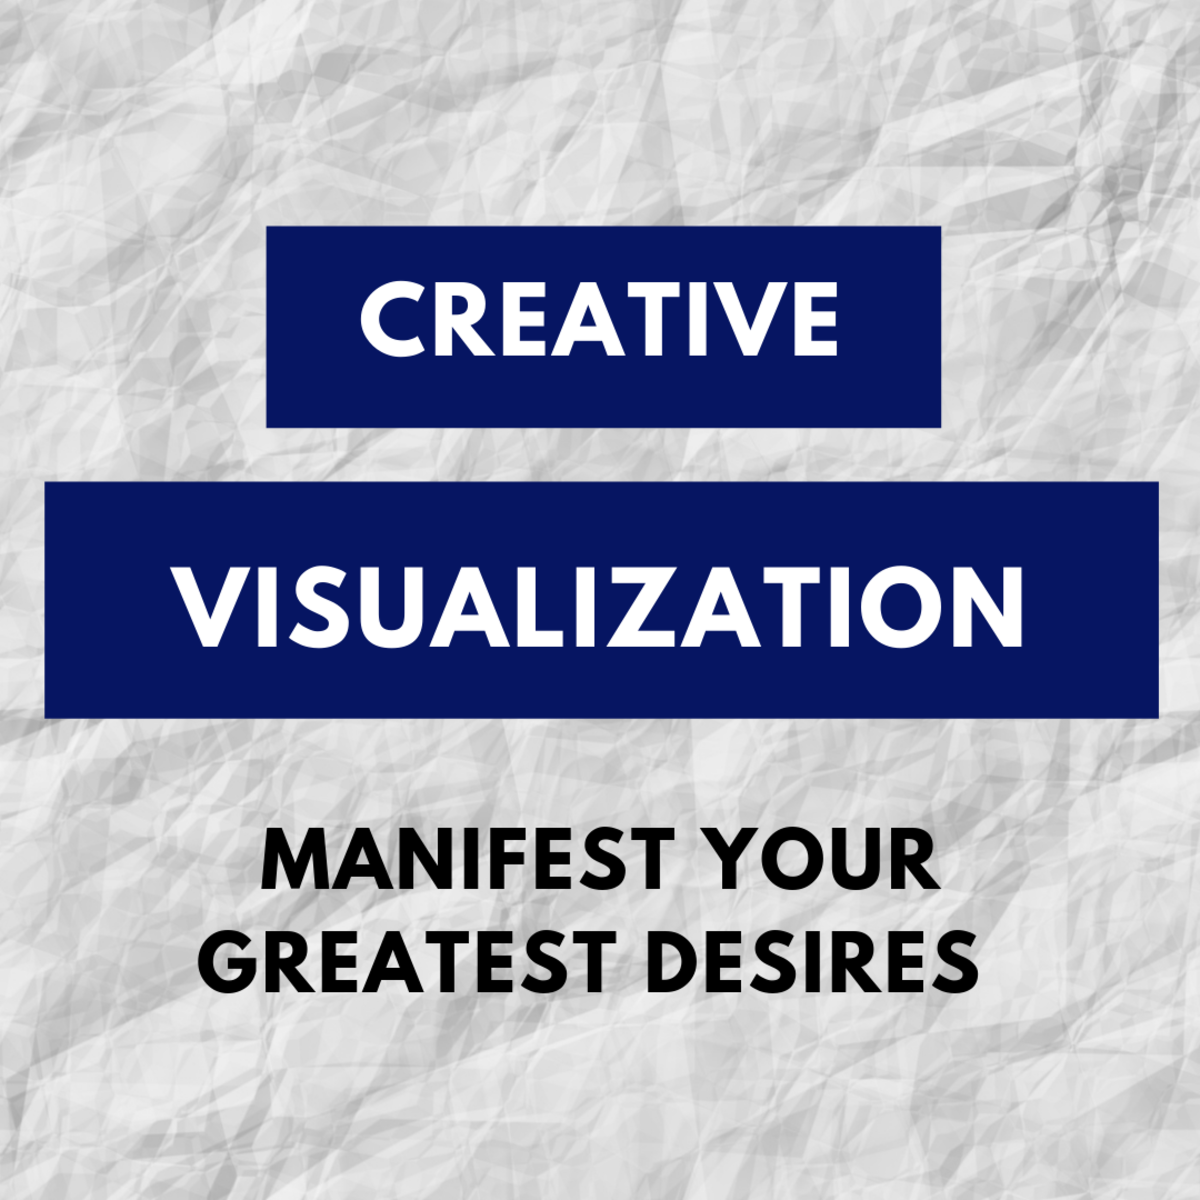 How to use Creative Visualization to Manifest Your Greatest Desires